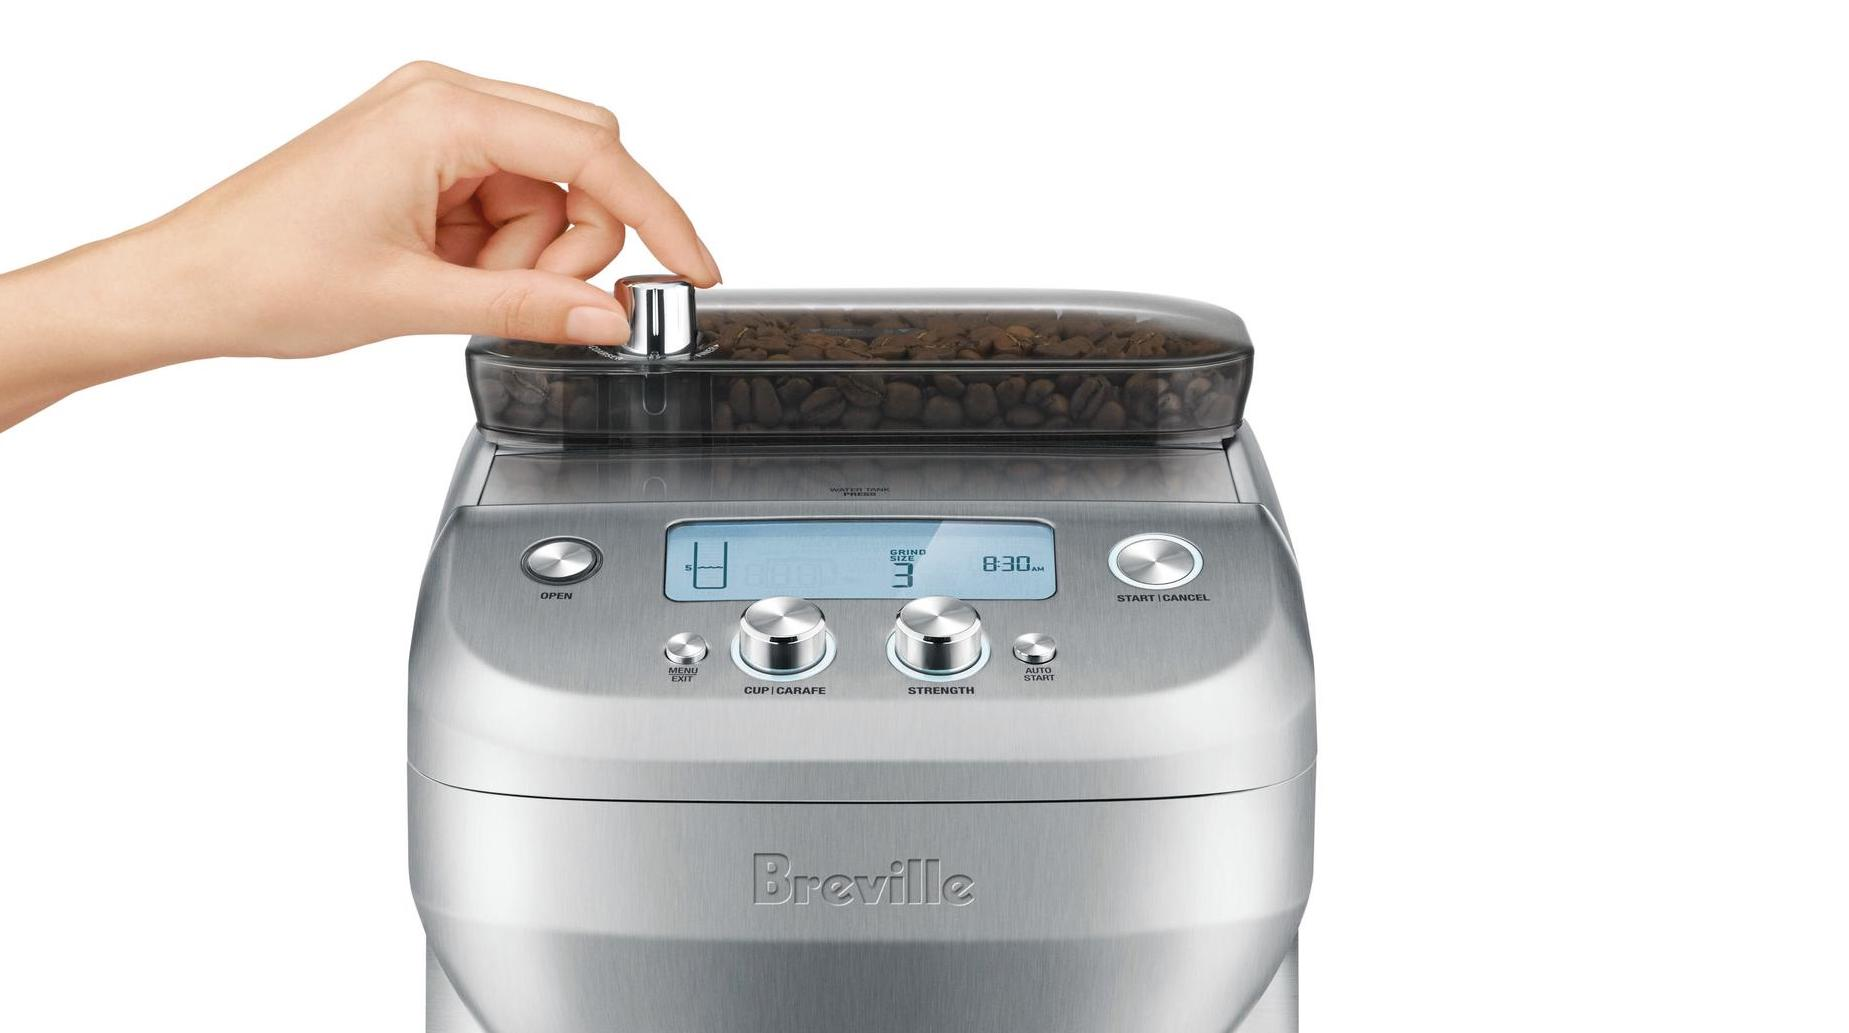 Brew strength drip coffee maker